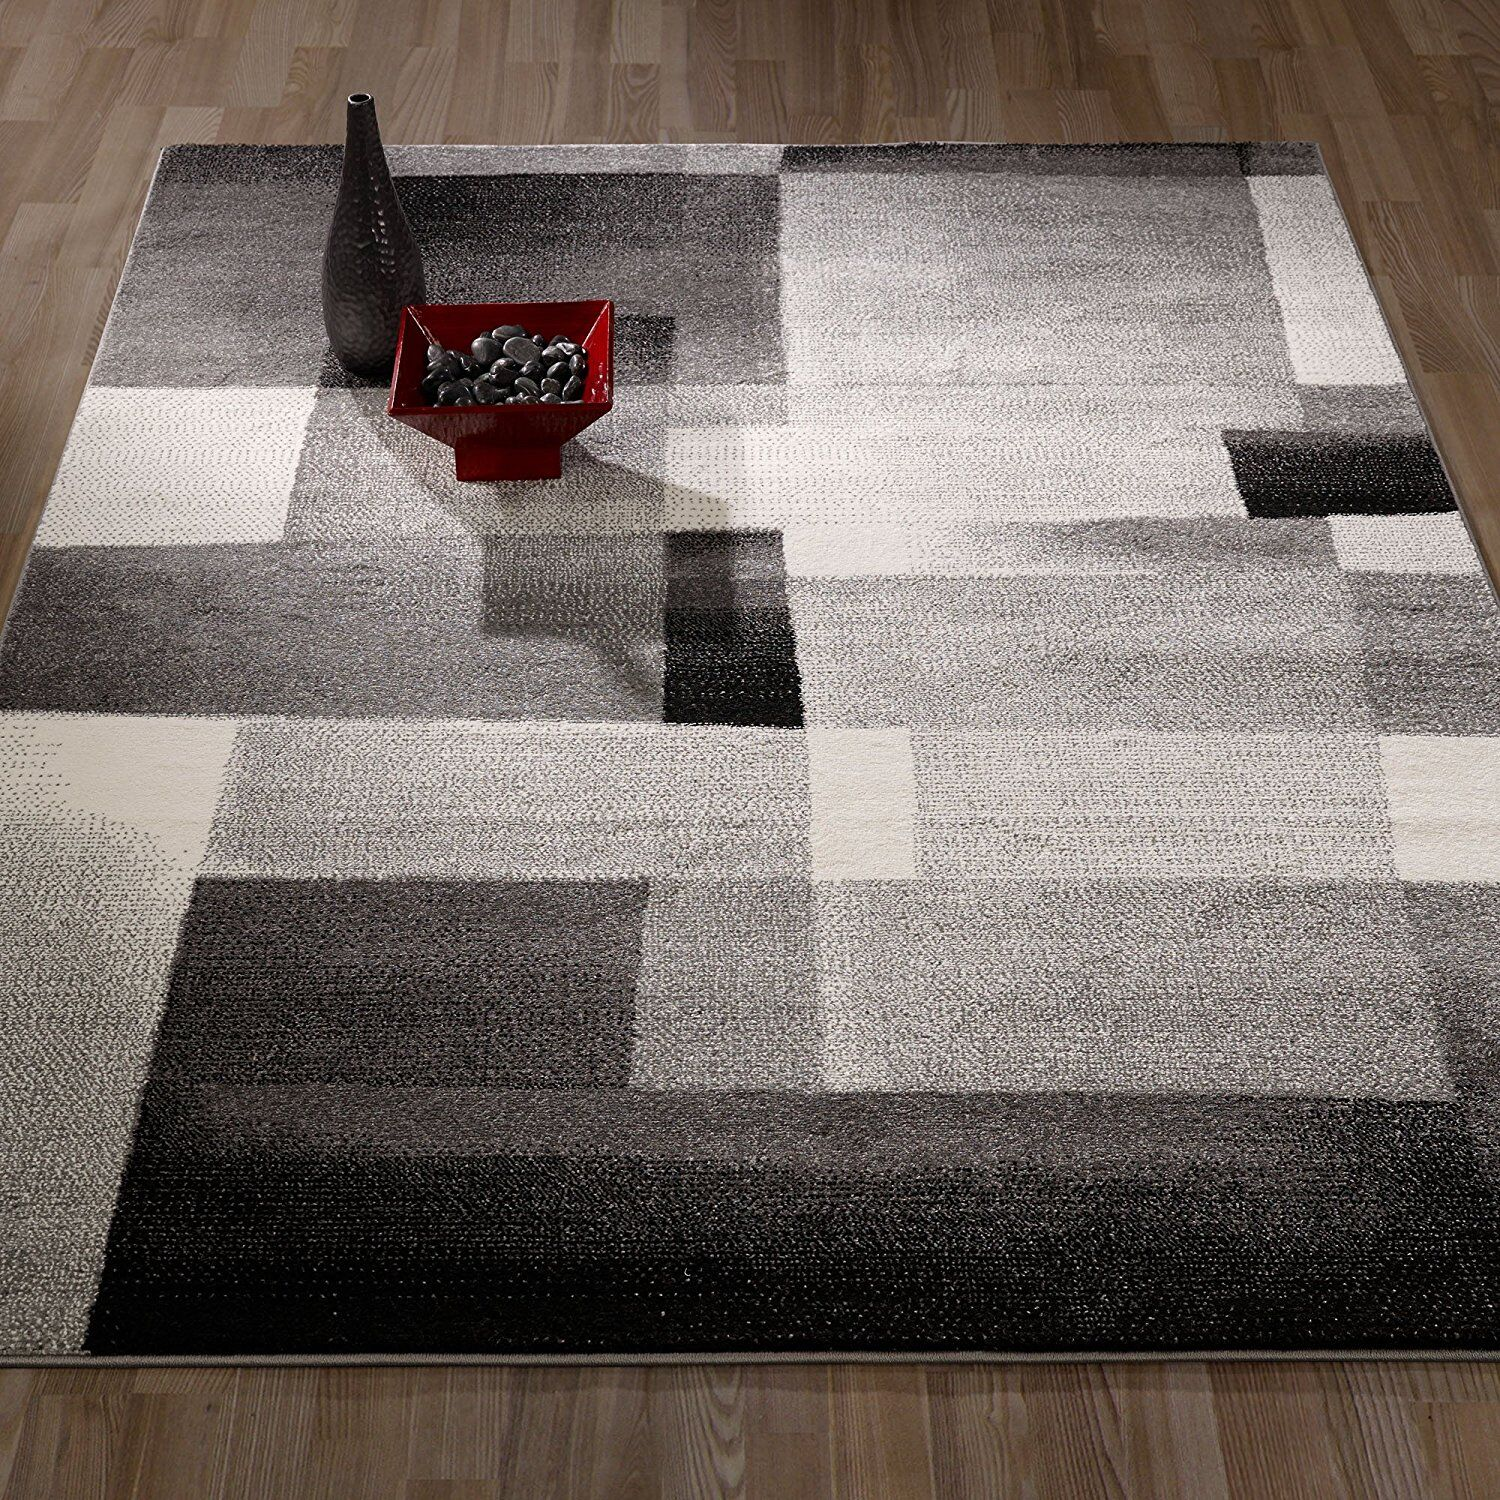 Thrower Geometric/Abstract Tiles Gray Area Rug